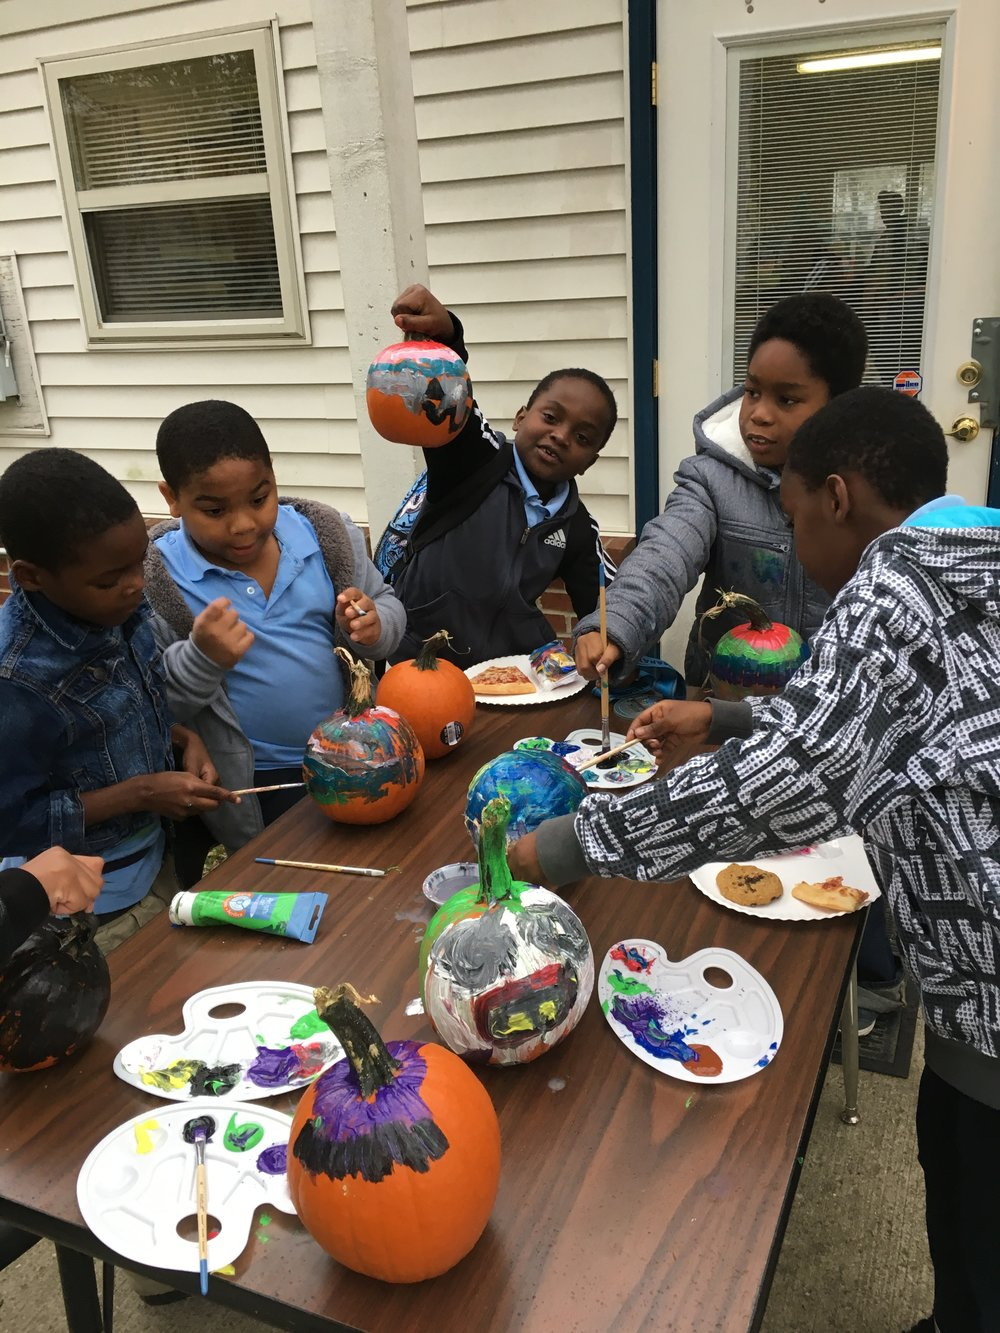 Pumpkin painting at Marsh Run community center back porch.